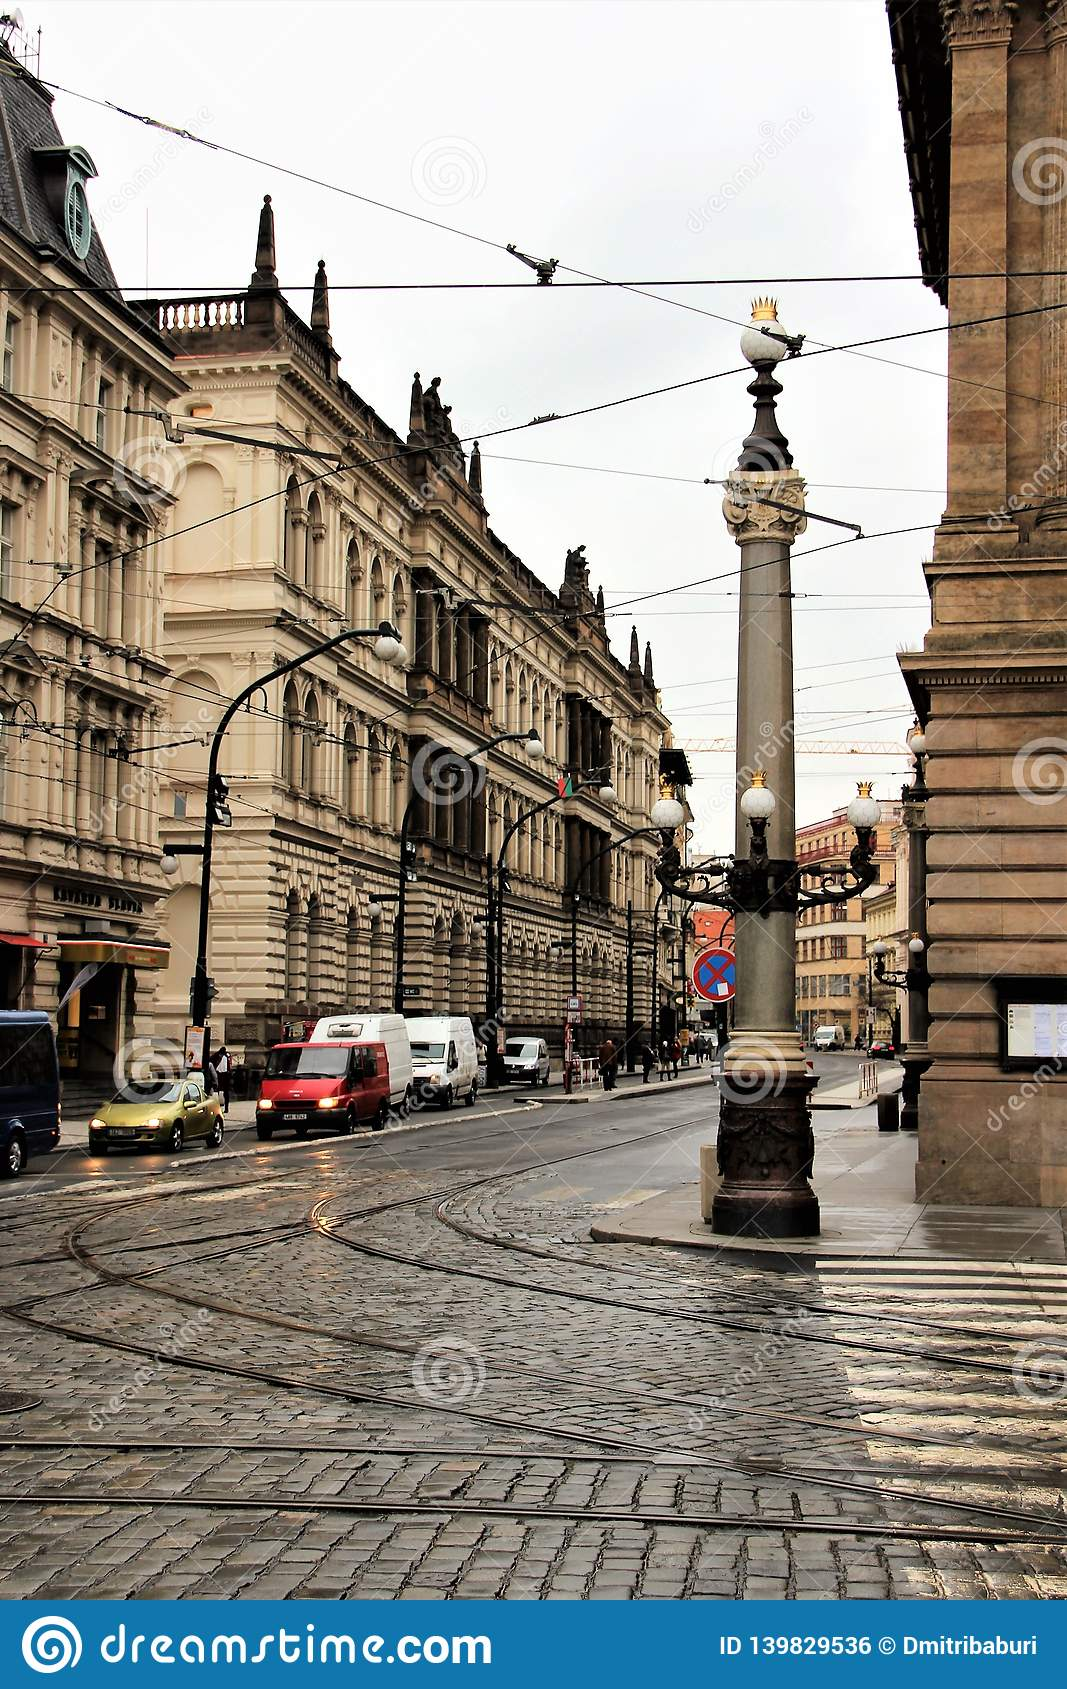 Prague, Czech Republic, January 2015. View of the street in the center, a beautiful column with lamps on the corner.